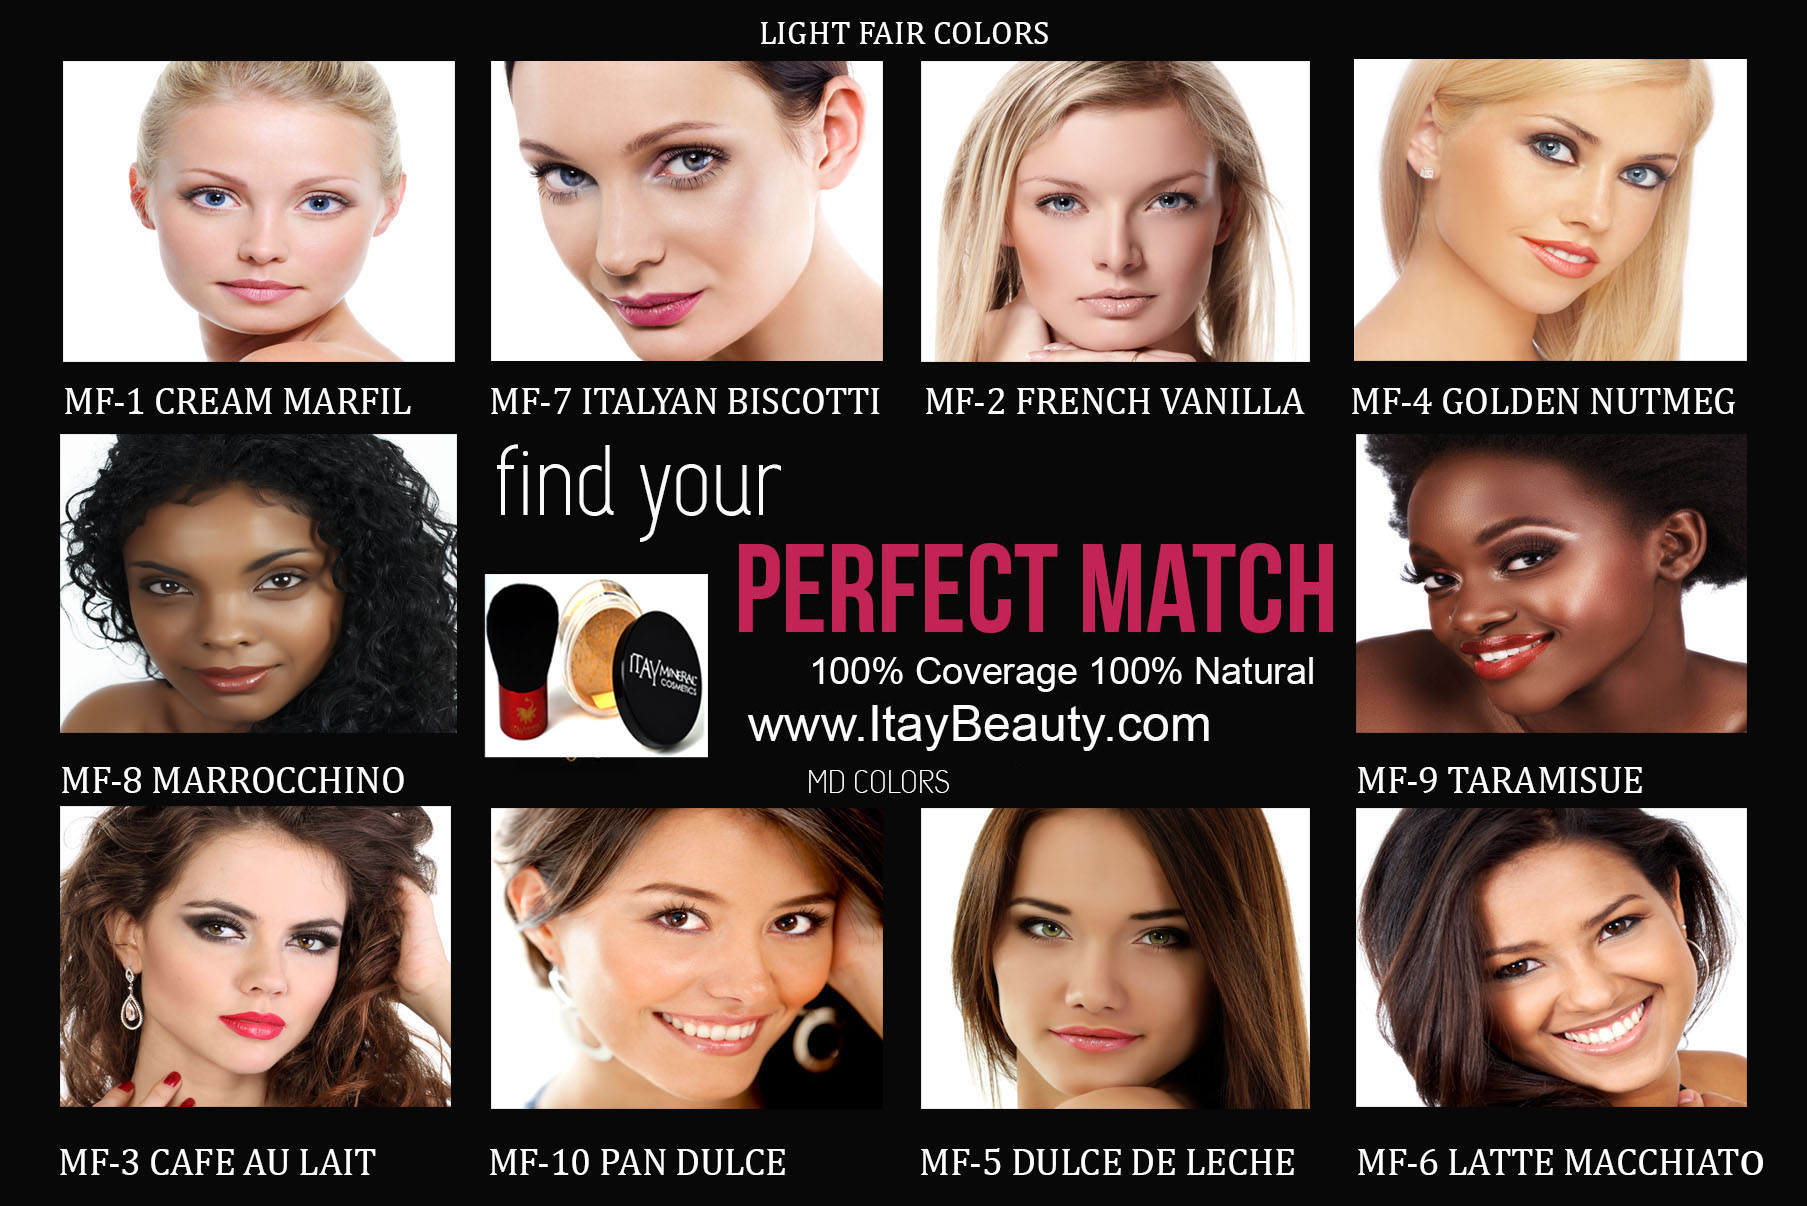 find-your-match-itay-beauty.jpg